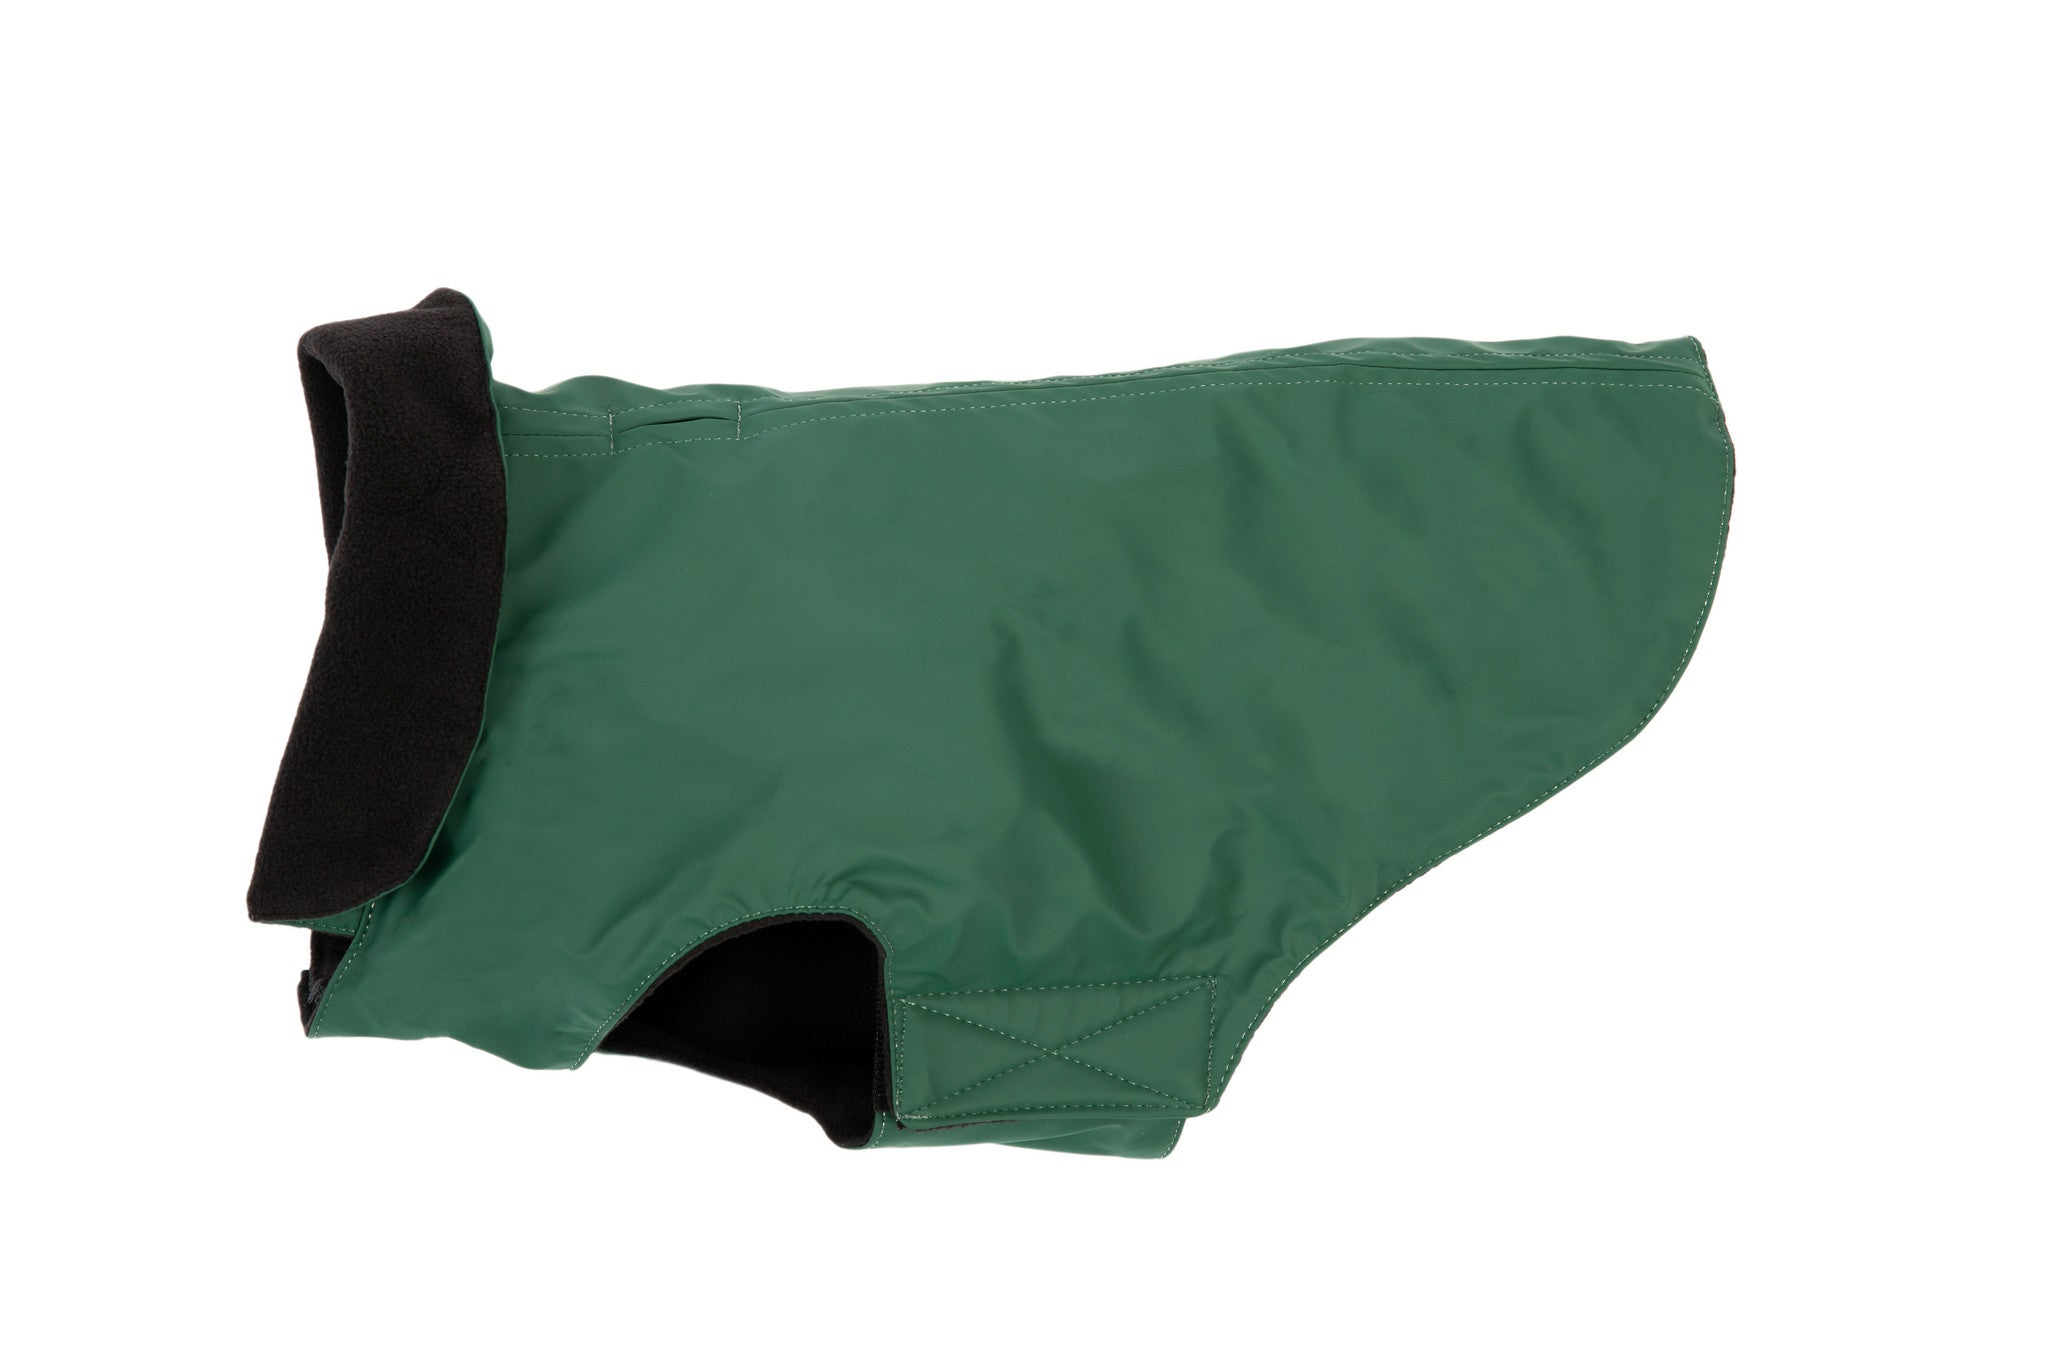 Neoprene | Waterproof | Animal Wrapper | Dog Coat | Winter Lined Raincoats | 3 Color Options